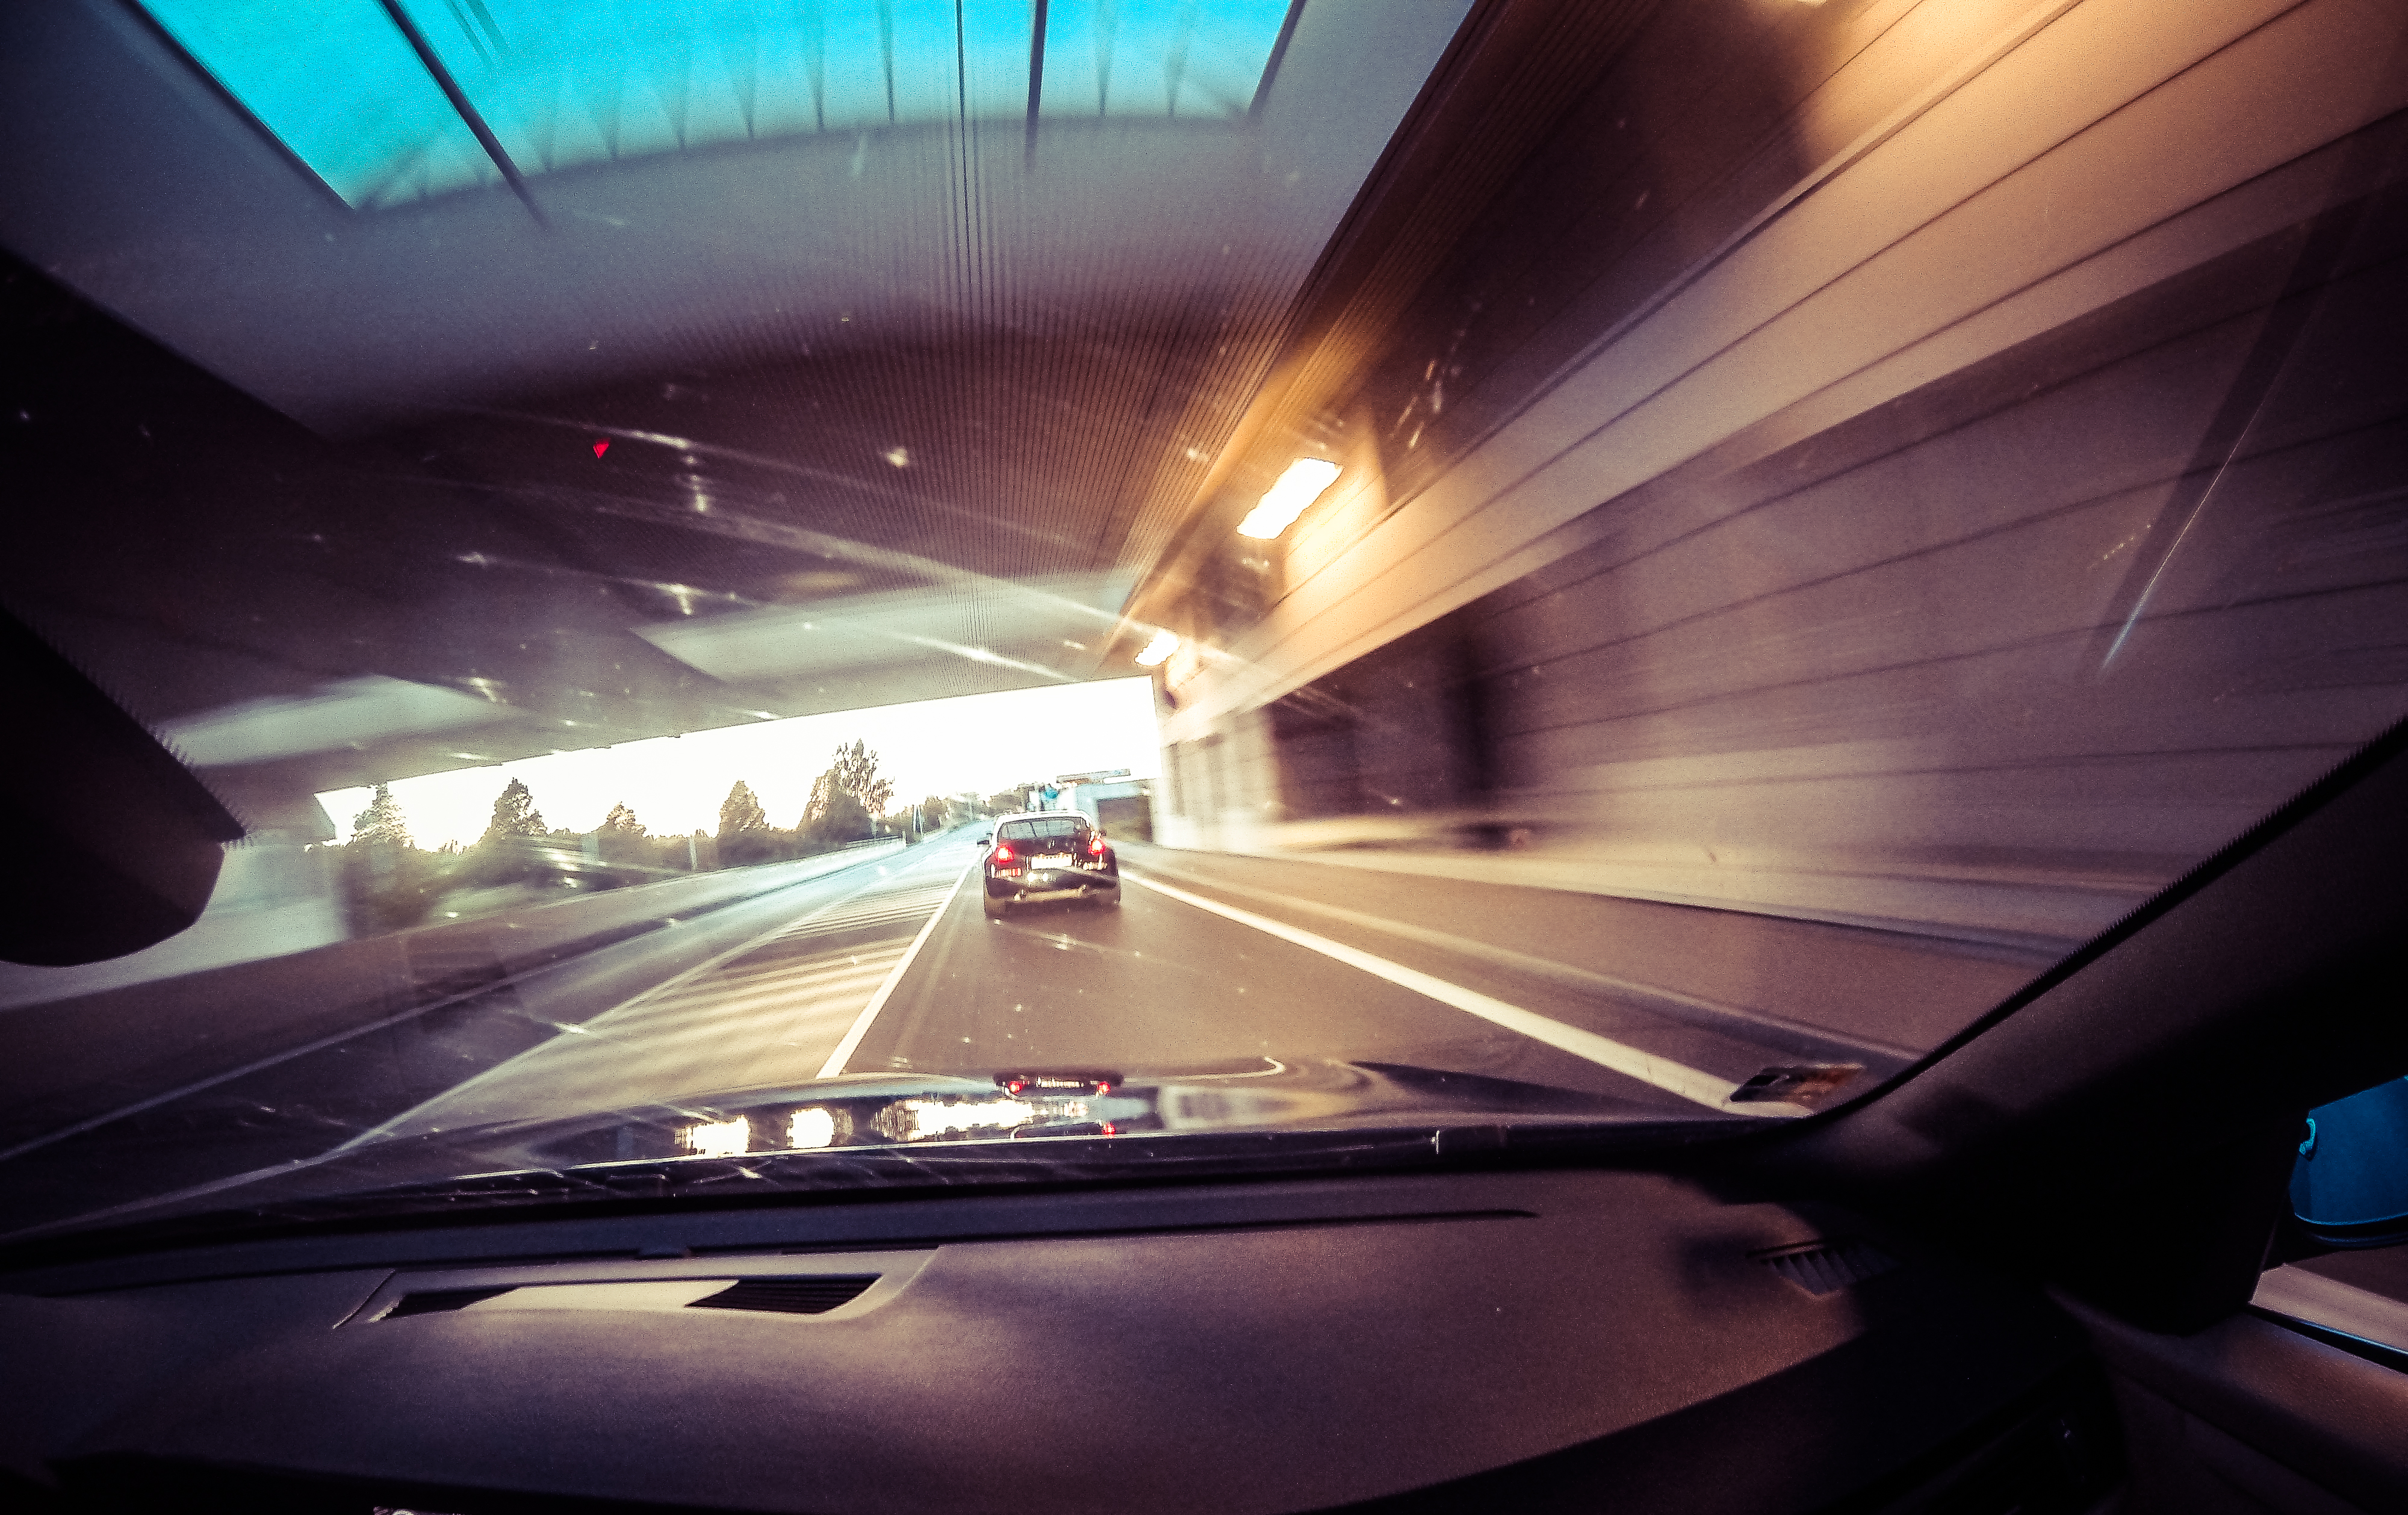 California Transmission Problems: Why Wait? - Your Legal Justice